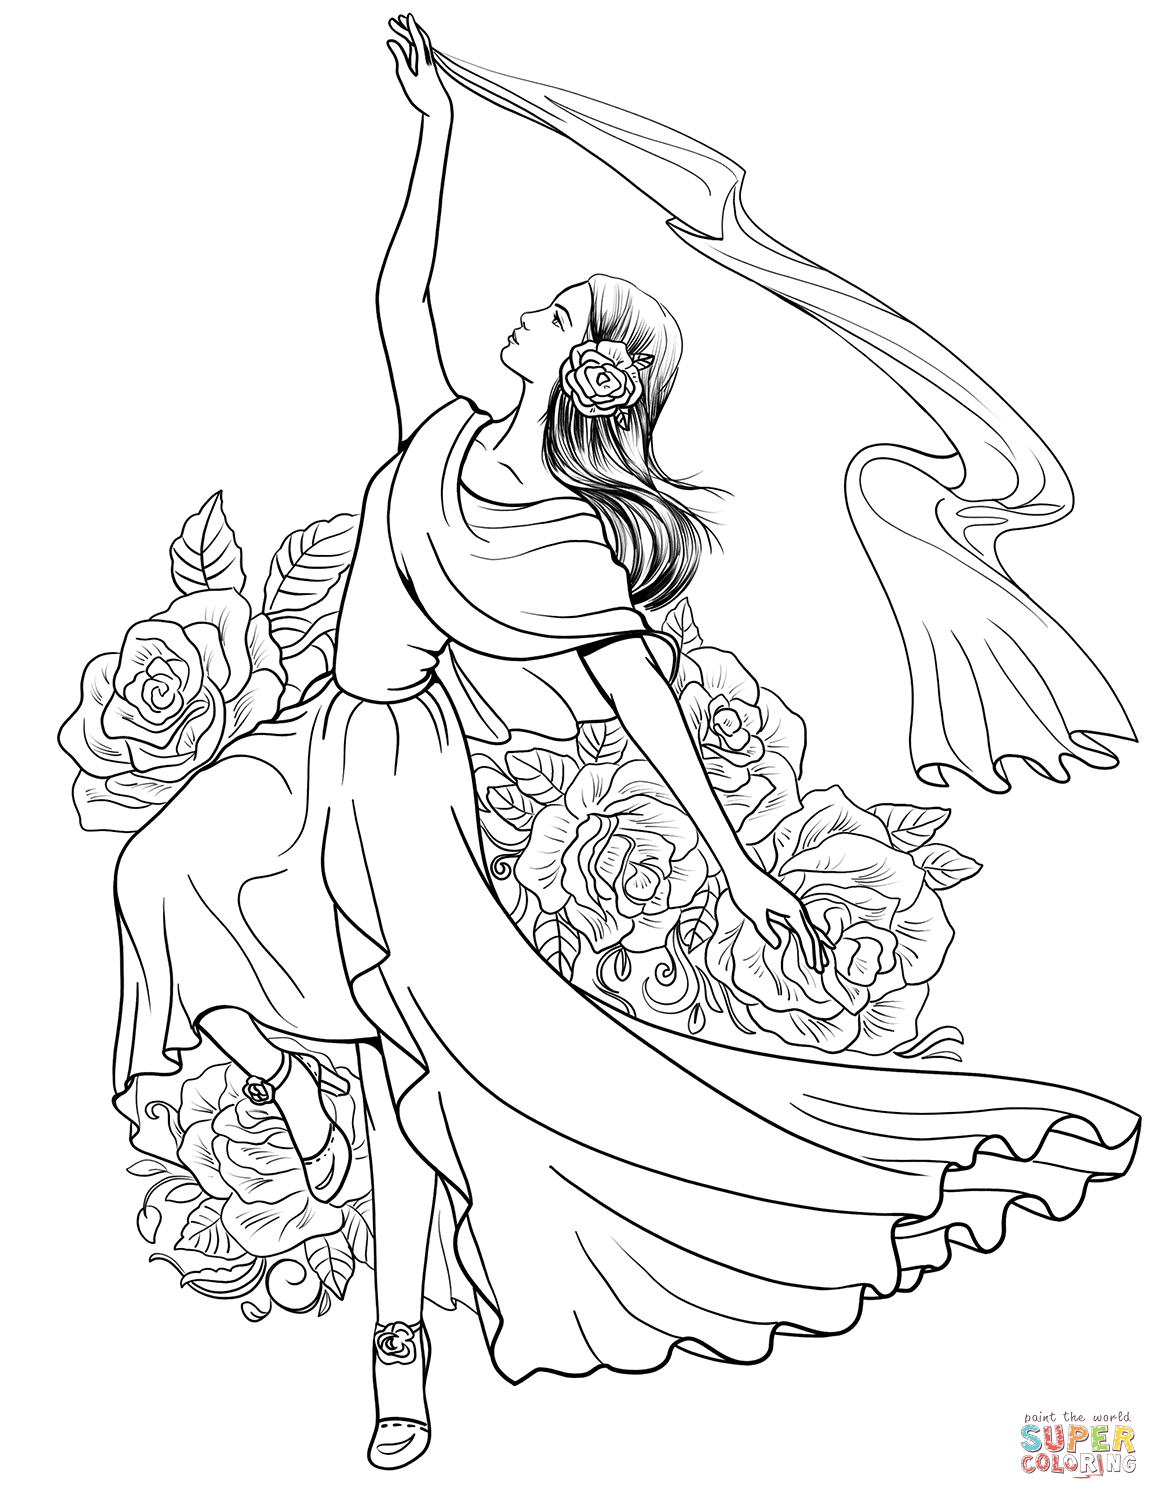 Spanish Woman Dancing Flamenco Coloring Page